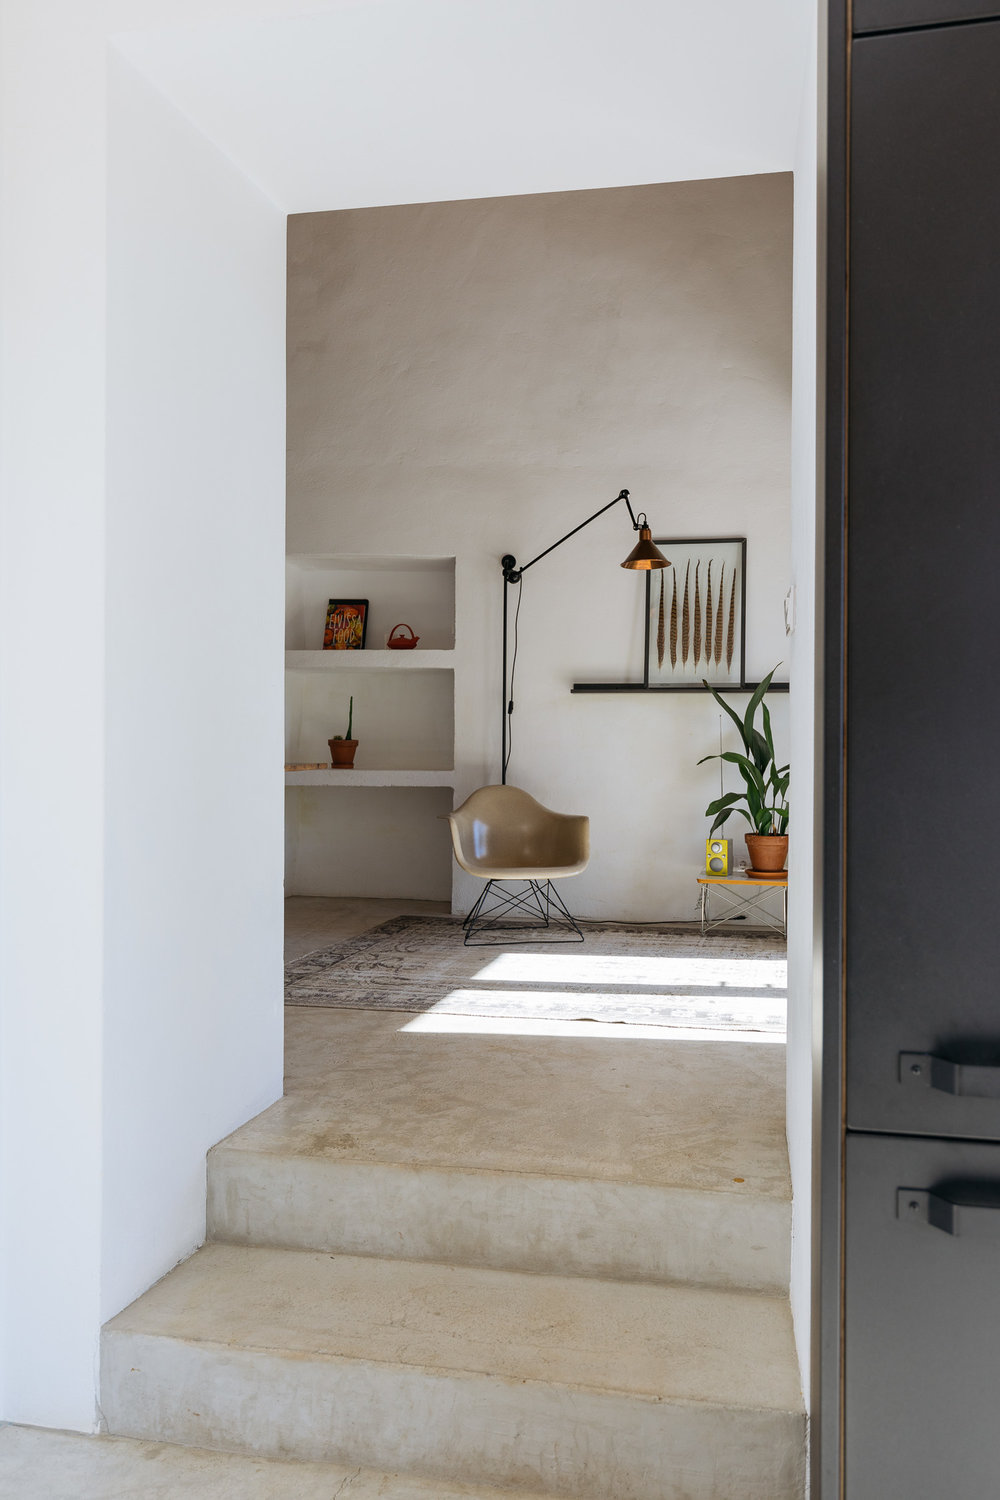 Ibiza_Campo_Loft_interior_architecture_photography_On_a_hazy_morning_Amsterdam251.jpg